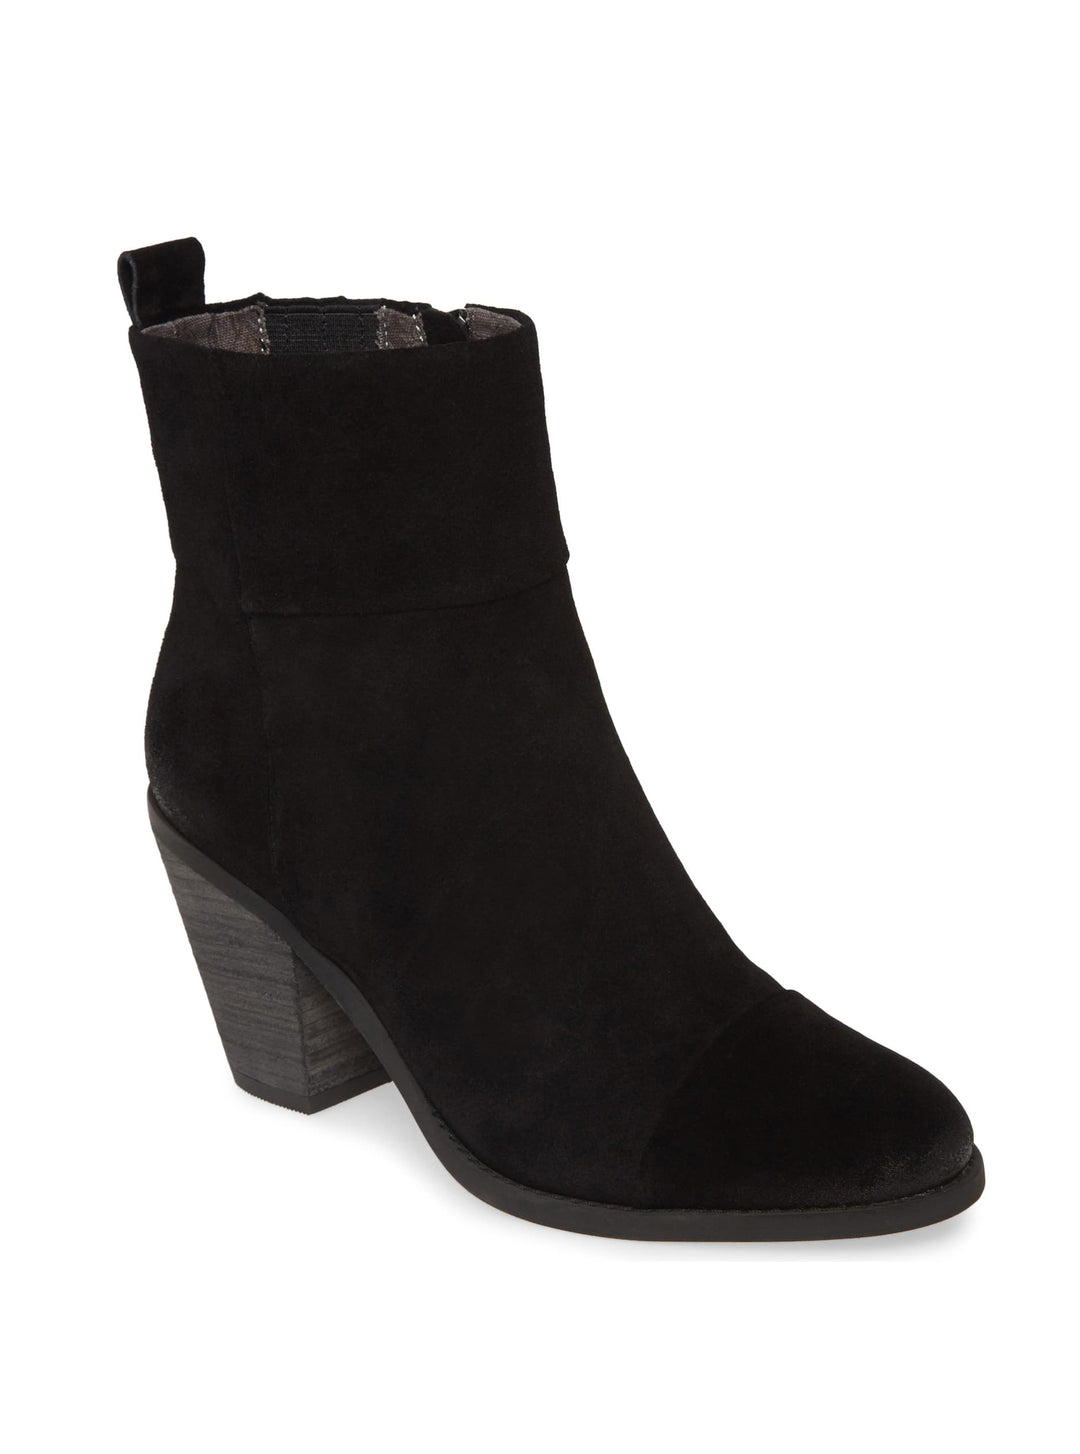 Penrose Black Suede Booties